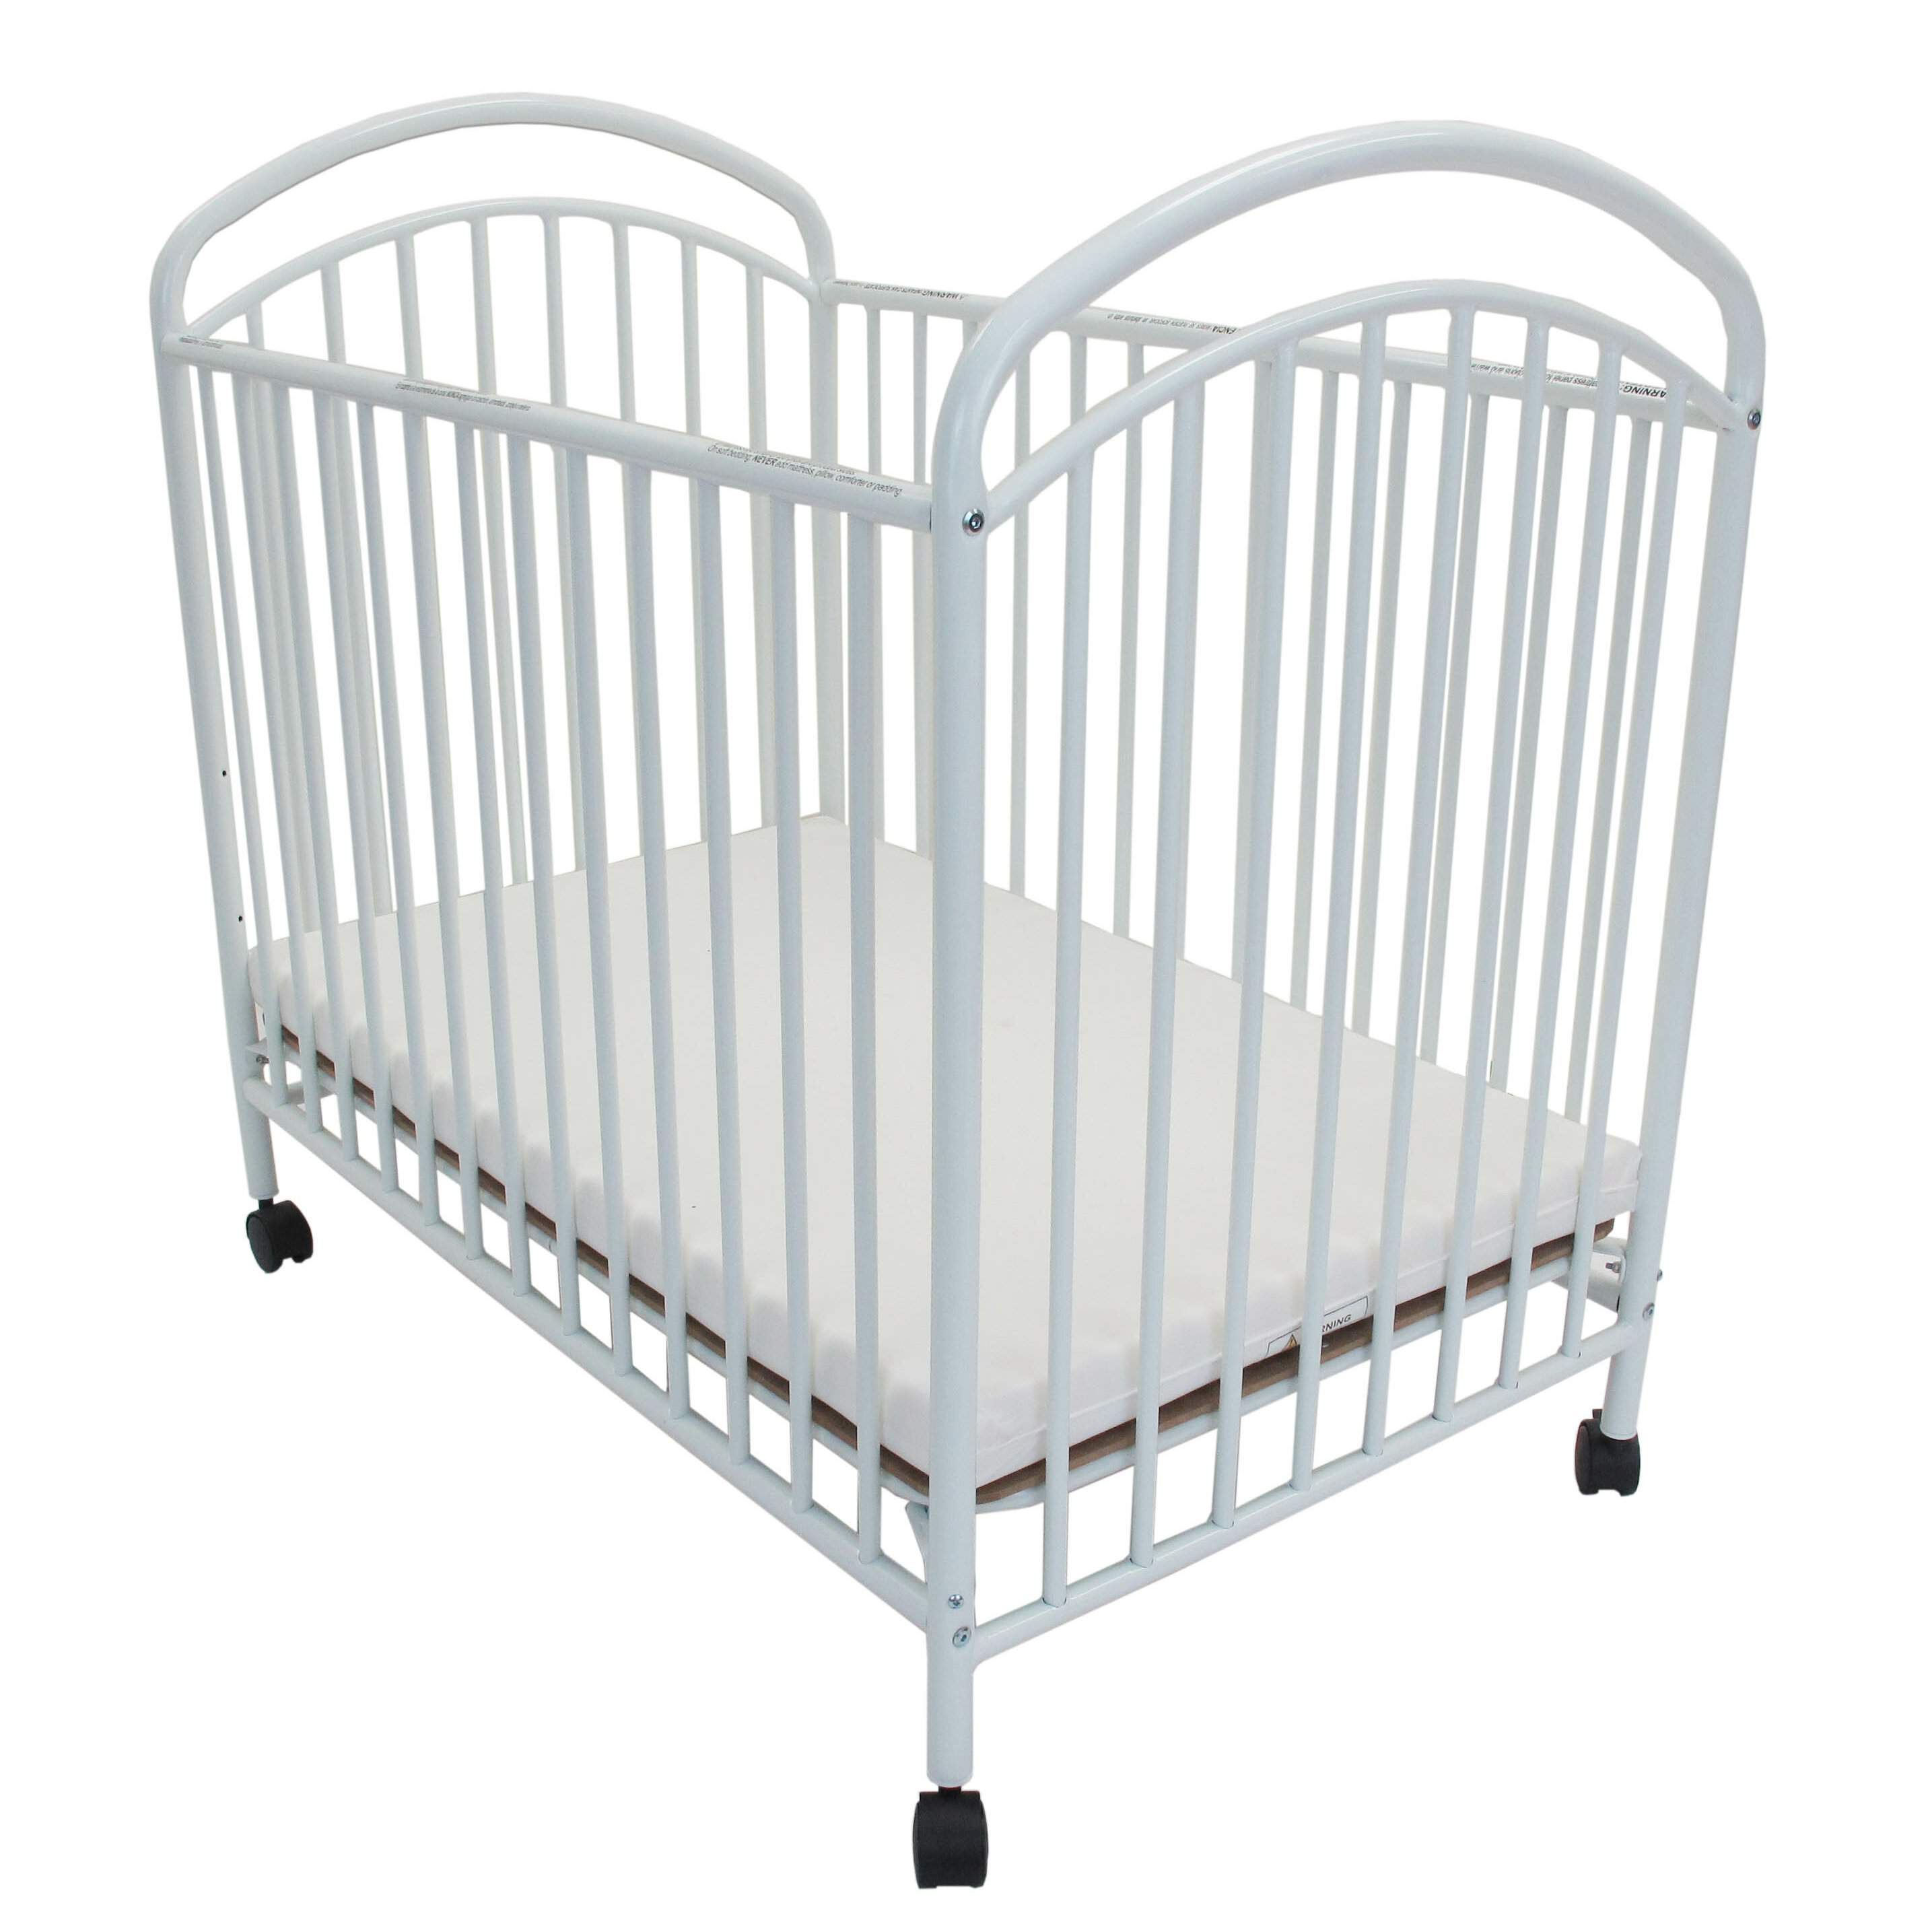 L.A. Baby Classic Arched Compact Metal Portable Crib With Mattress U0026  Reviews | Wayfair